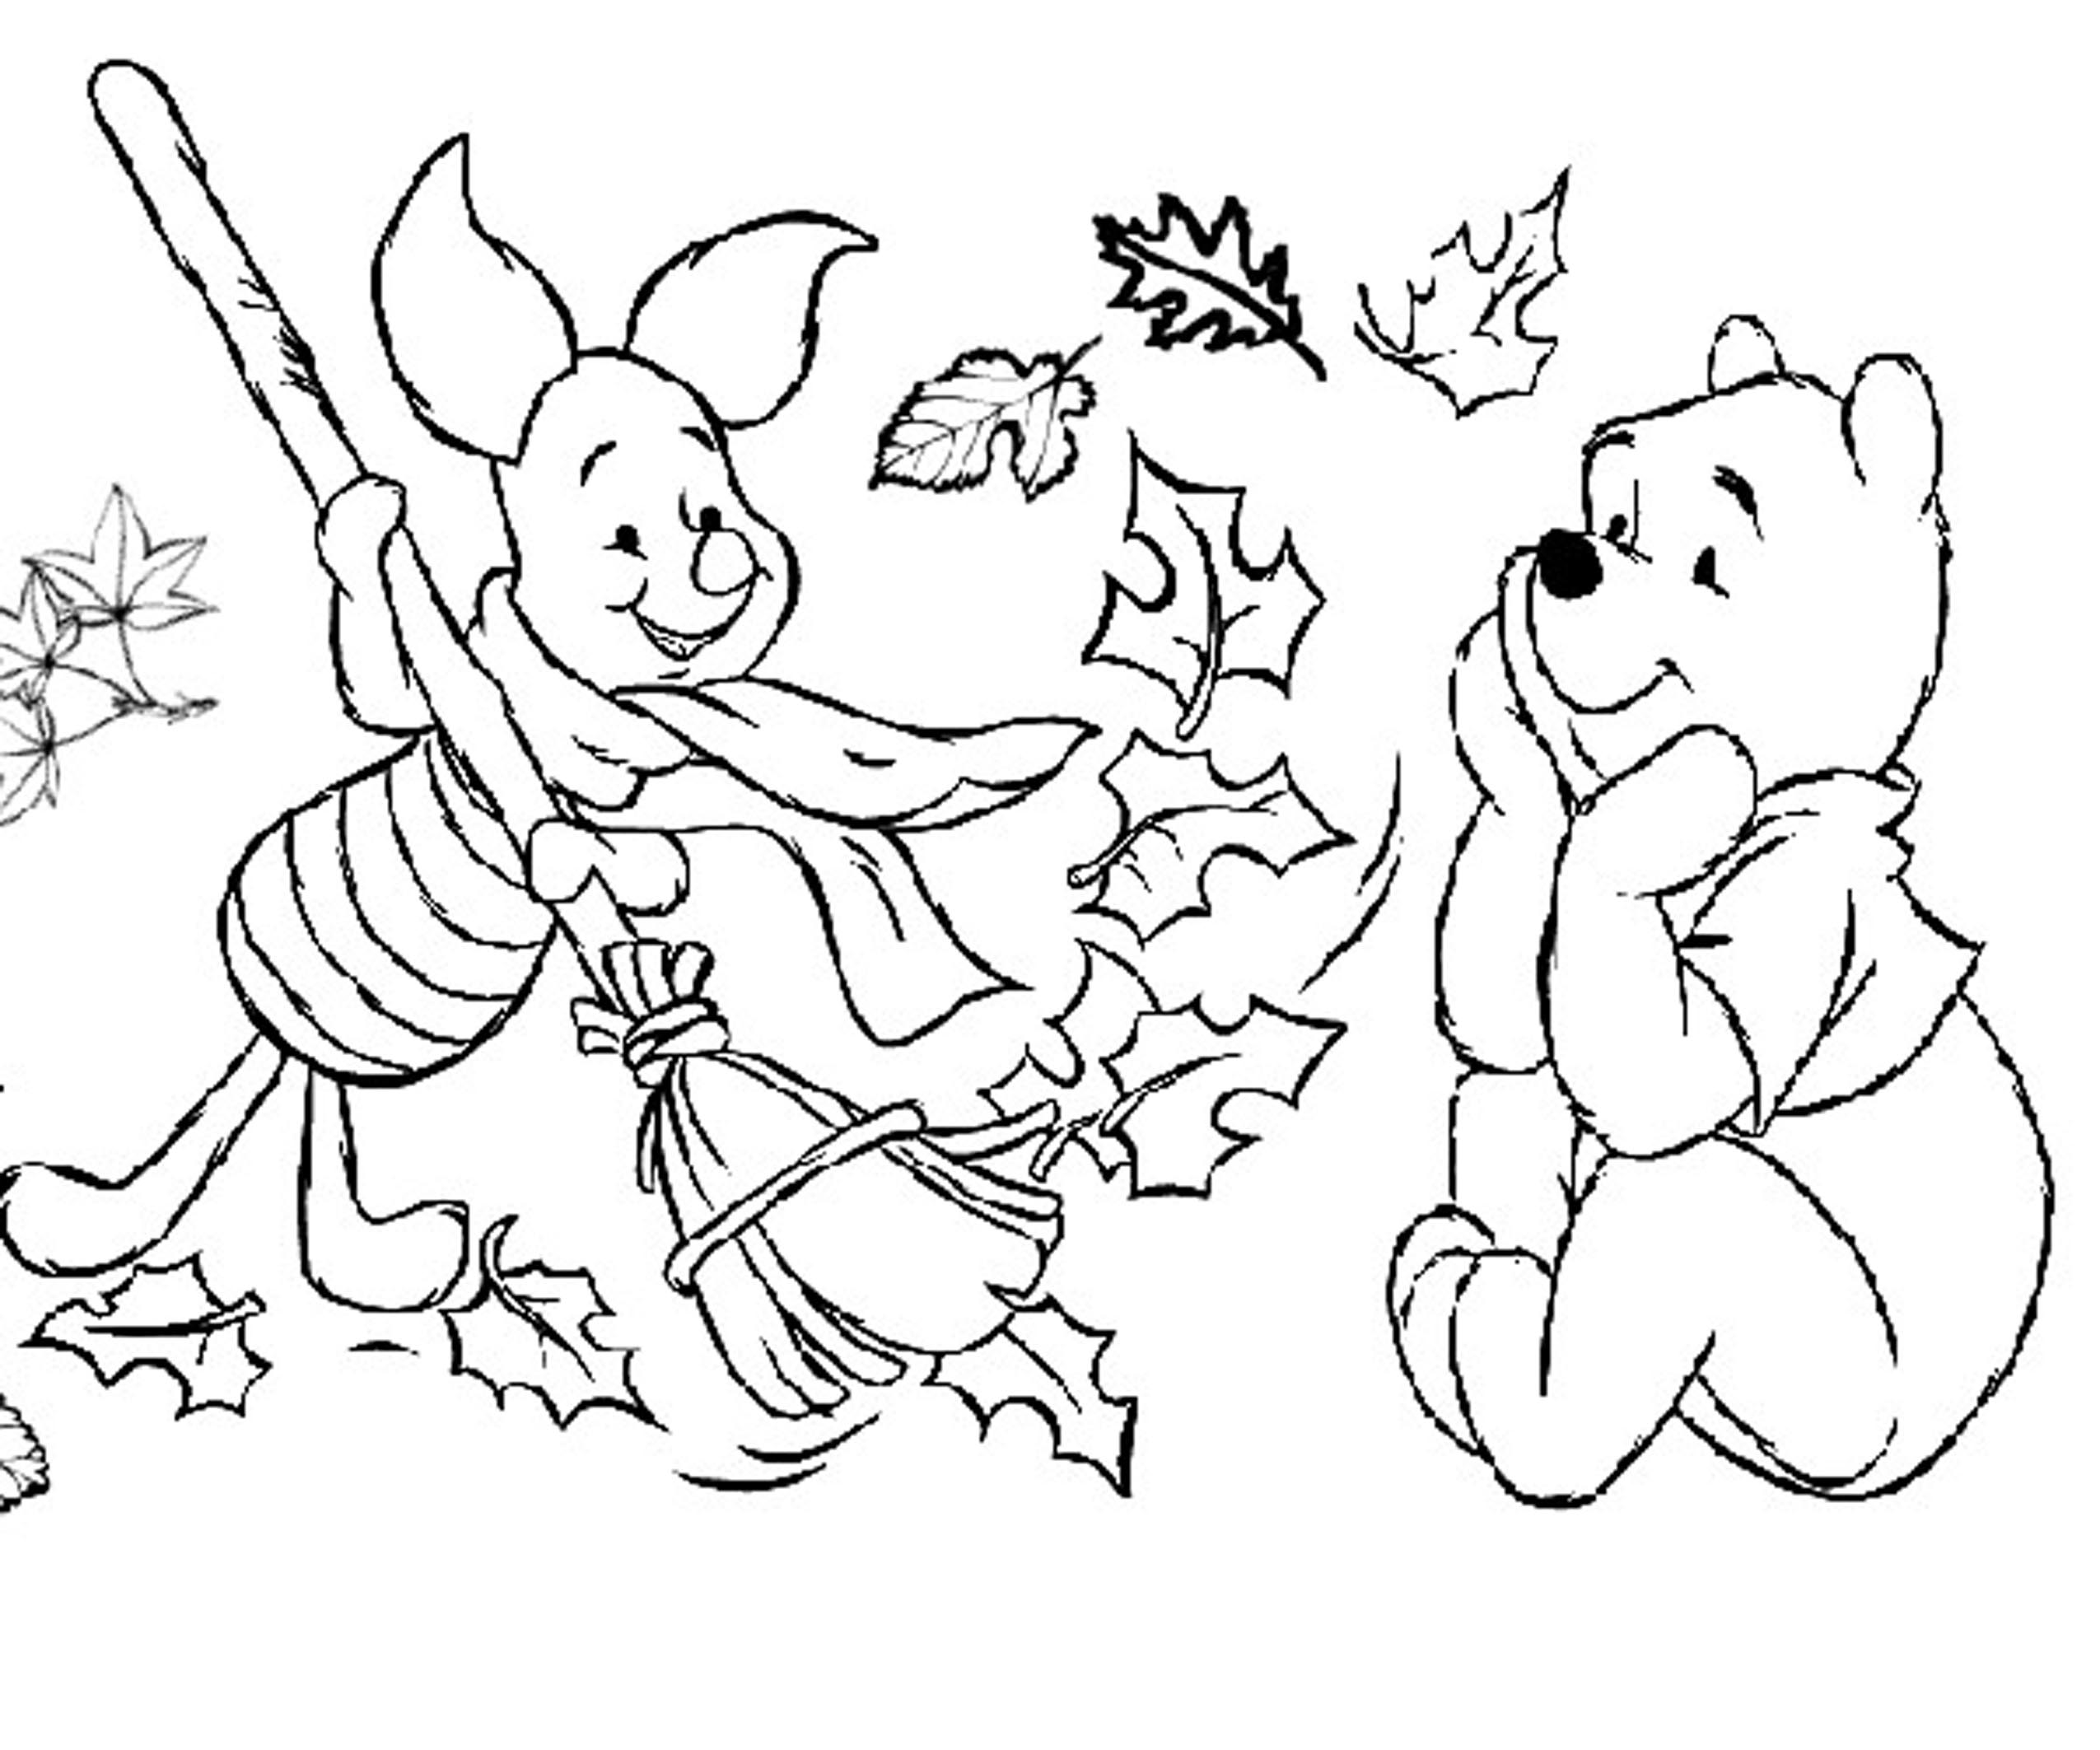 Free Coloring Pages | crayola.com | 2125x2550